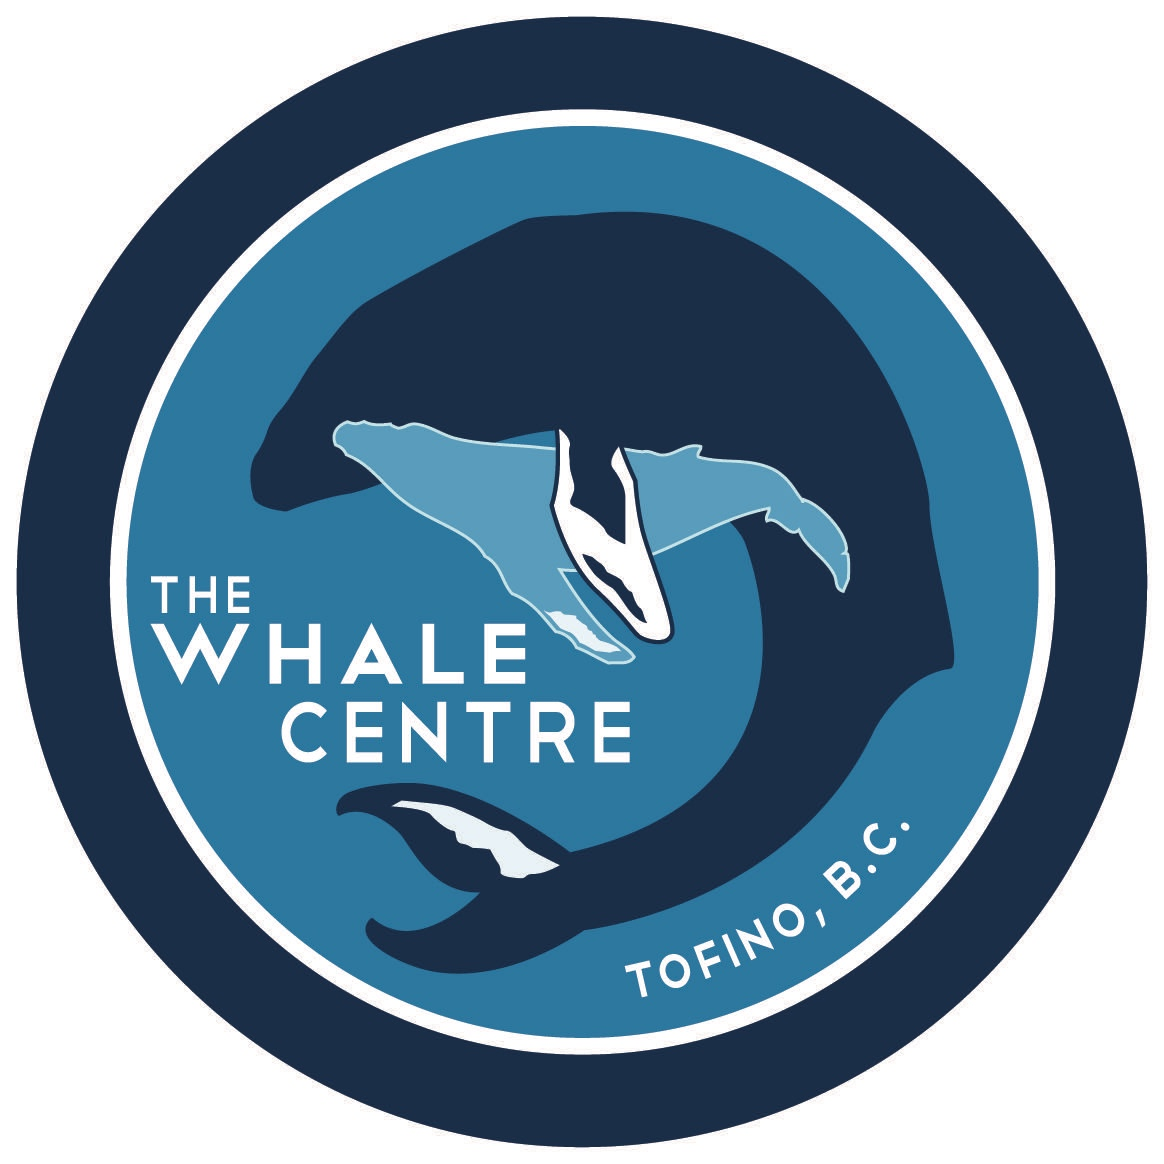 The Whale Centre